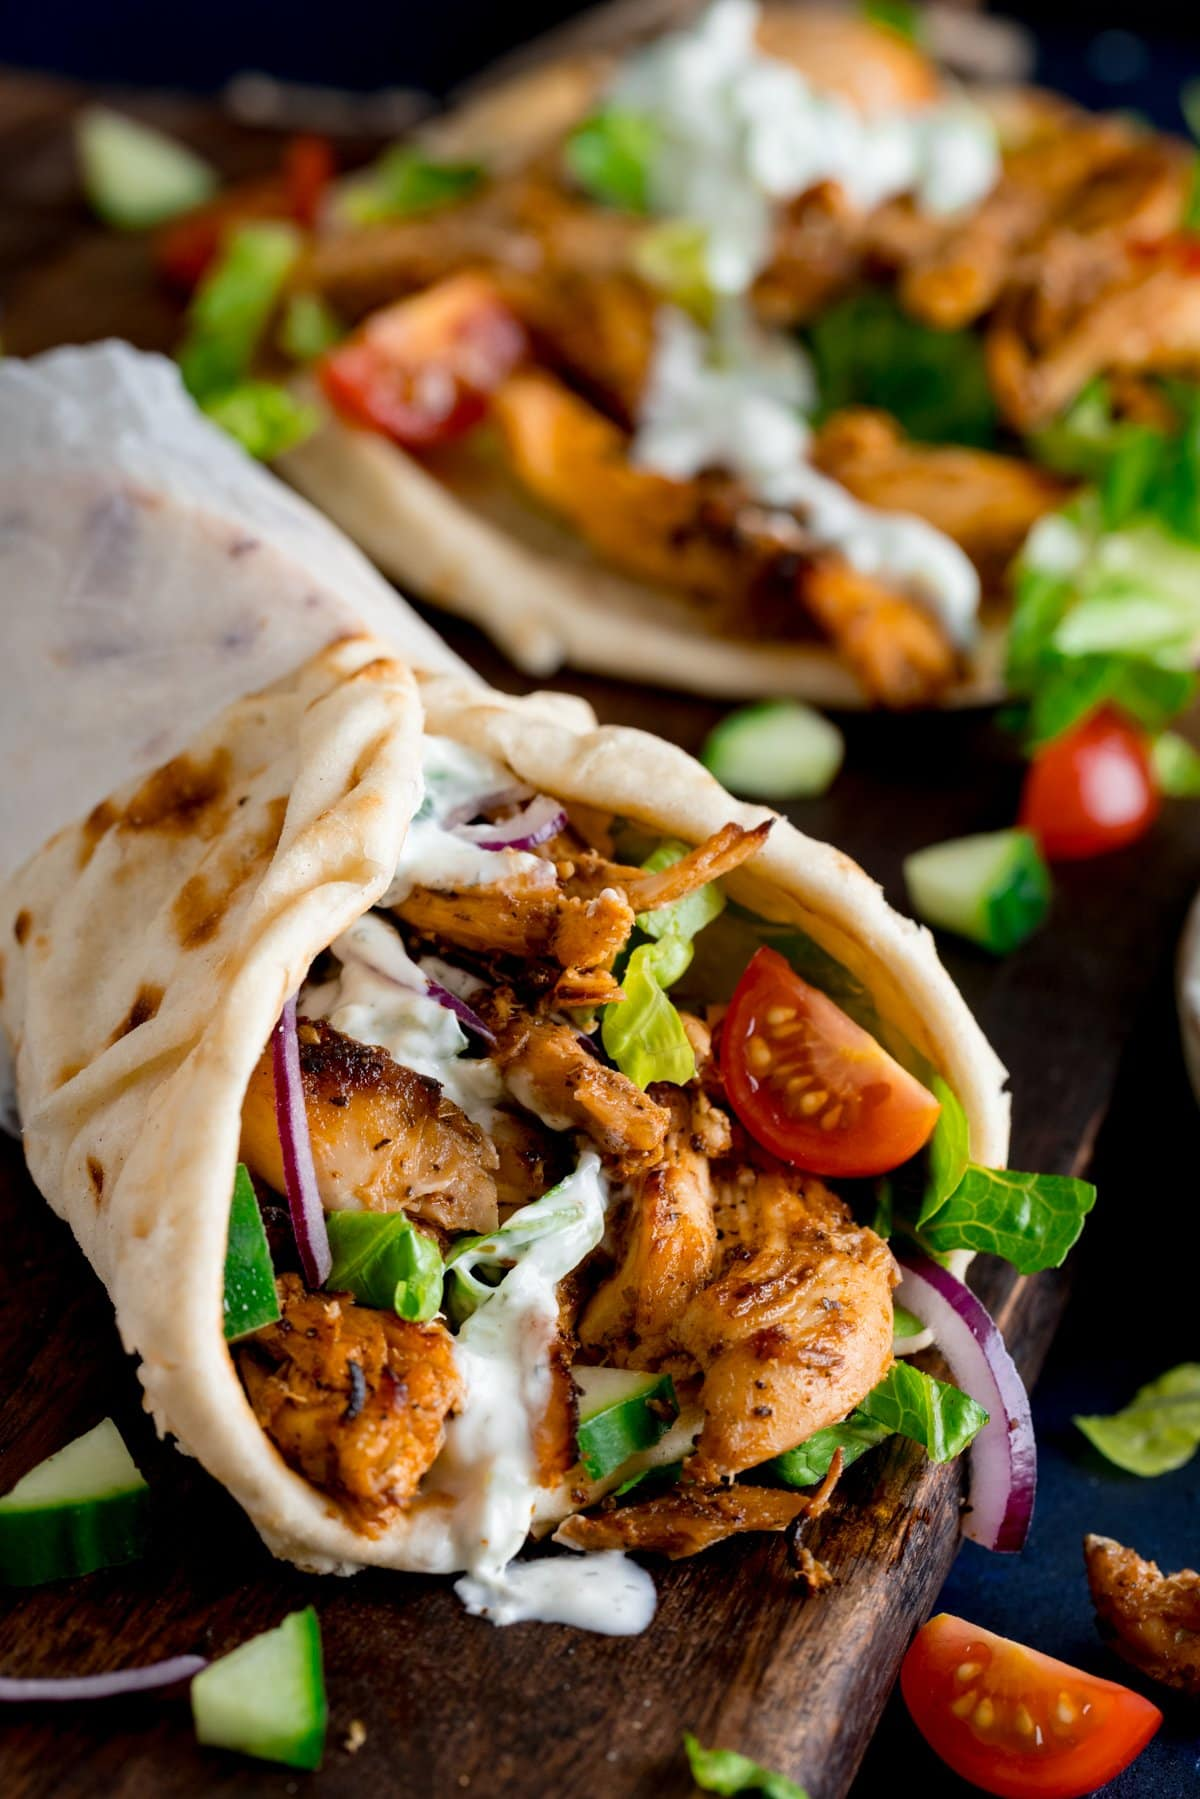 Chicken gyros in a rolled up flatbread with tzatziki and salad on a wooden board. Further ingredients and an unrolled gyros flatbread (with toppings) also in shot.